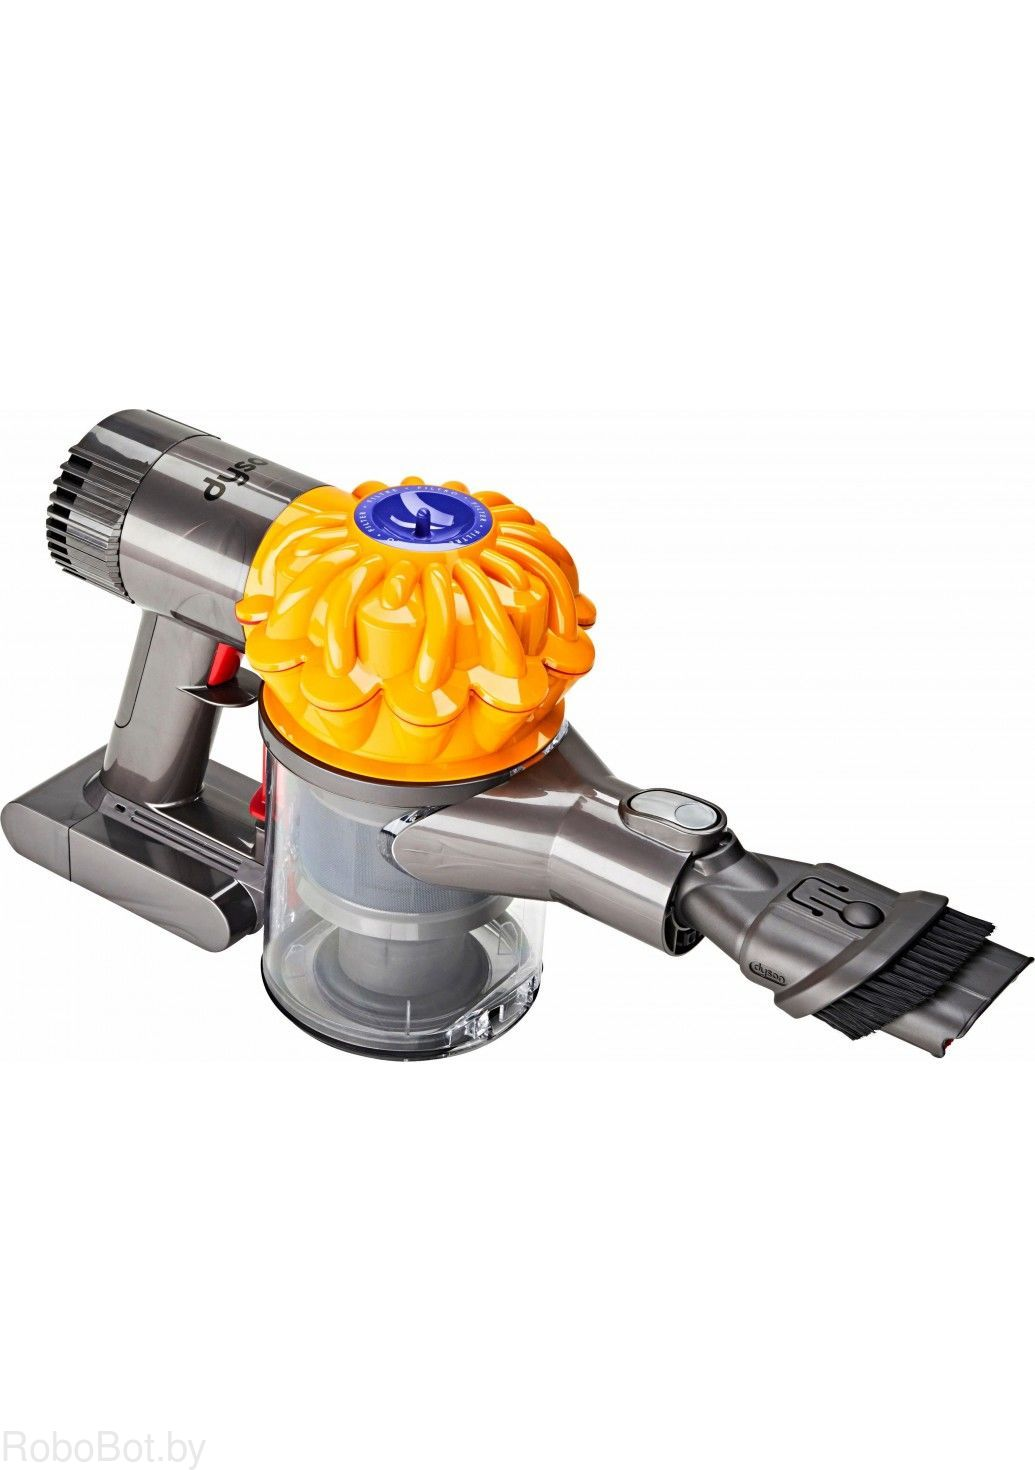 dyson Your product will be shipped to its final destination to arrive in 2 business days or faster if your order is placed before the 11 am pst cutoff time, then it will ship that day and arrive 2 business days later.